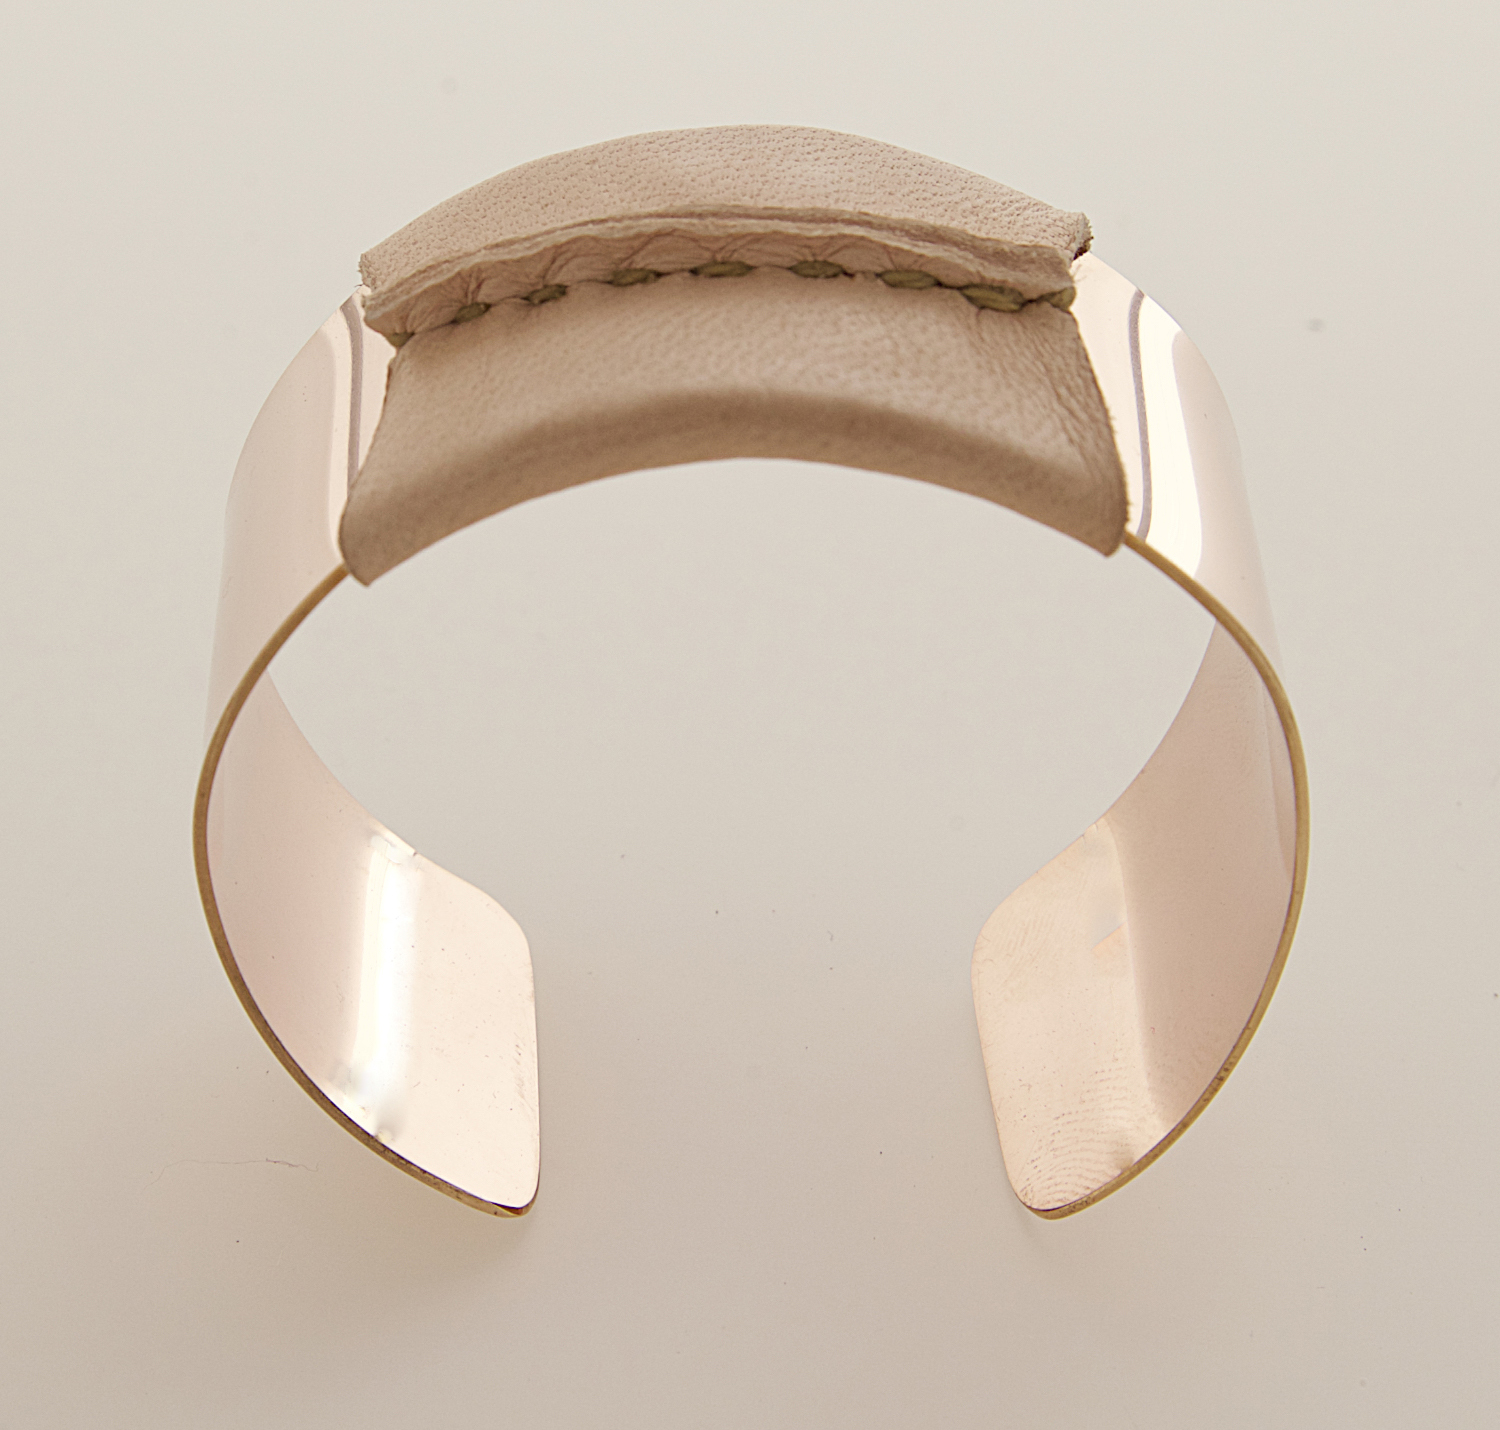 Rose Gold Filled Cuff Natural/Tan Leather